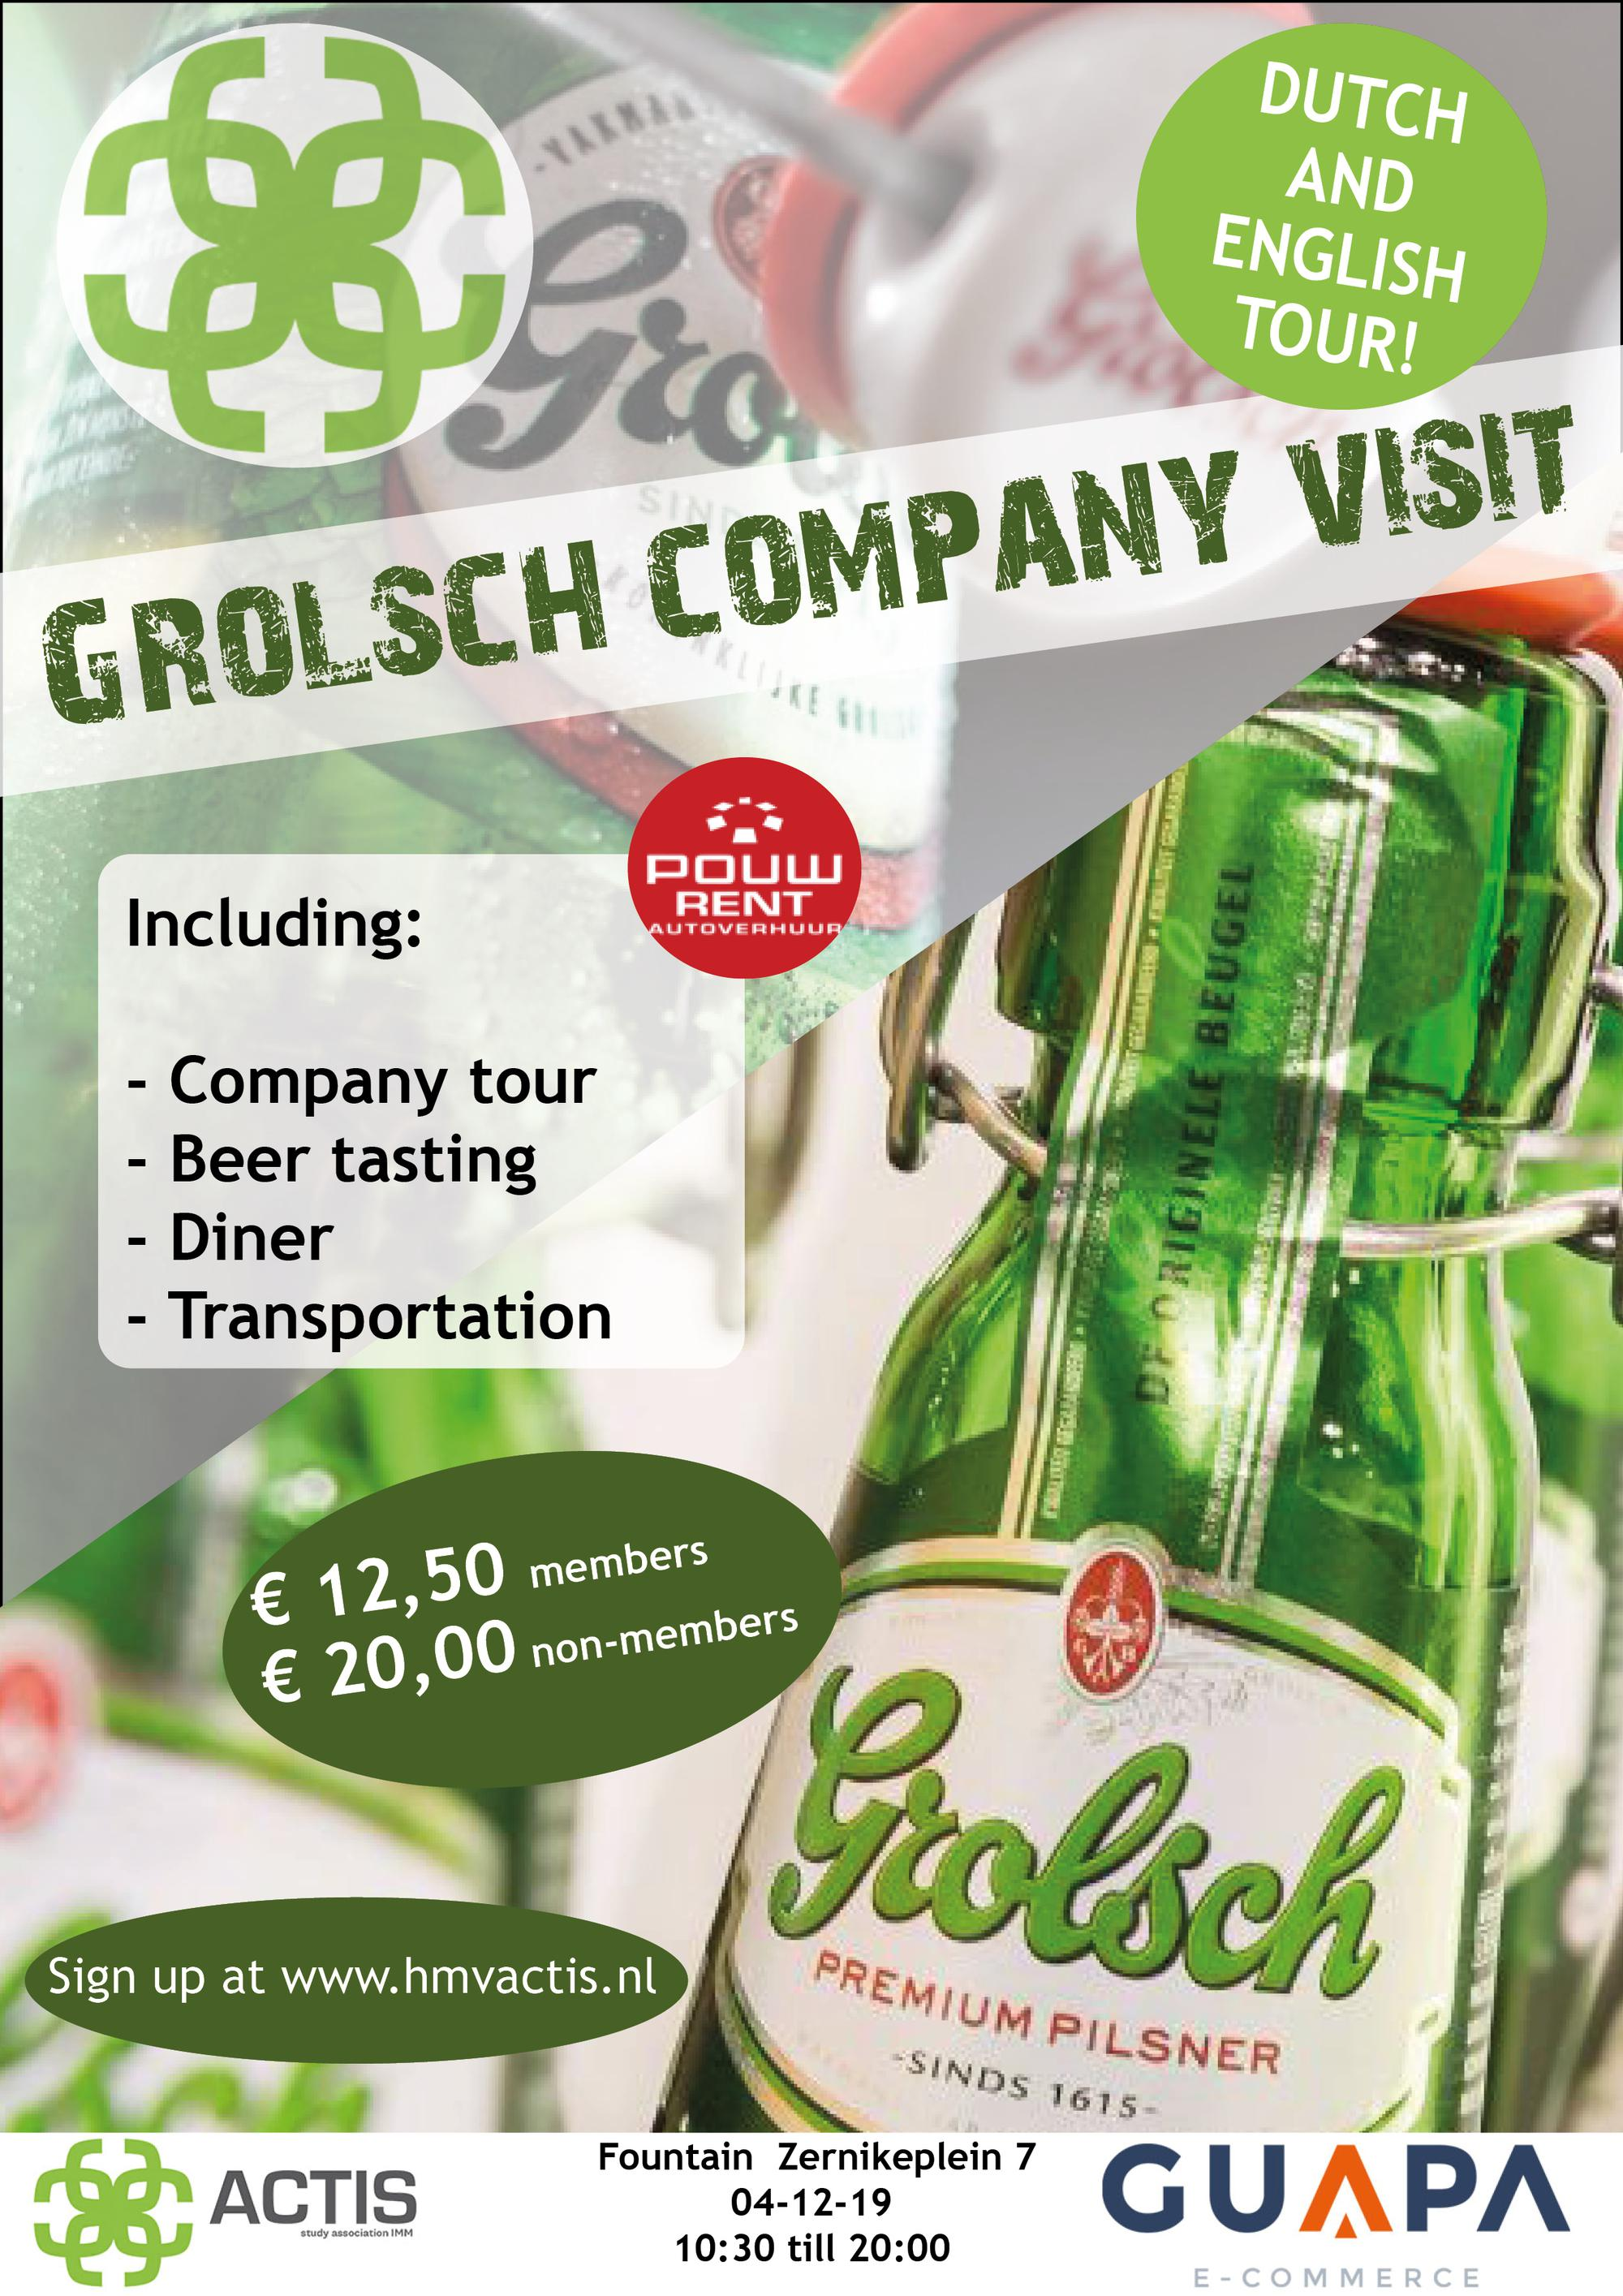 Company visit Grolsch (English tour)